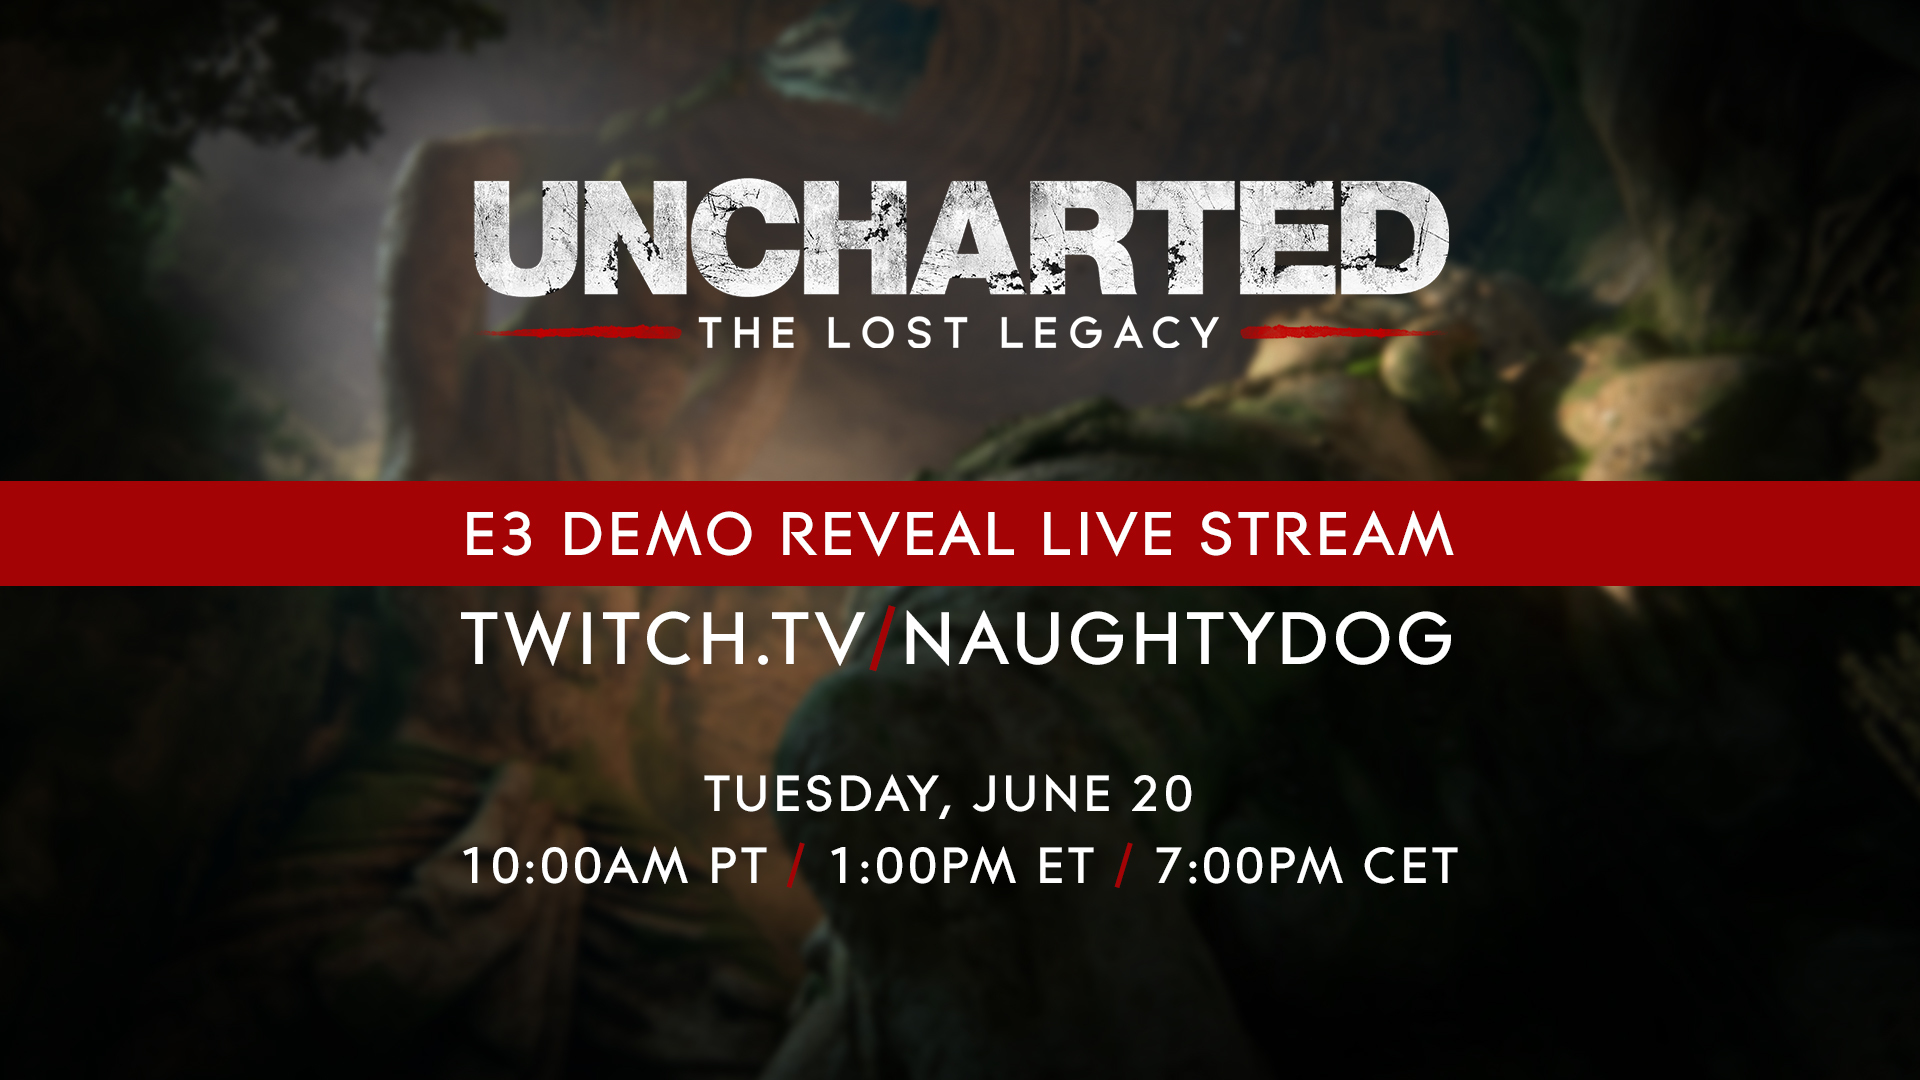 Uncharted: The Lost Legacy Gameplay Debuting on June 20